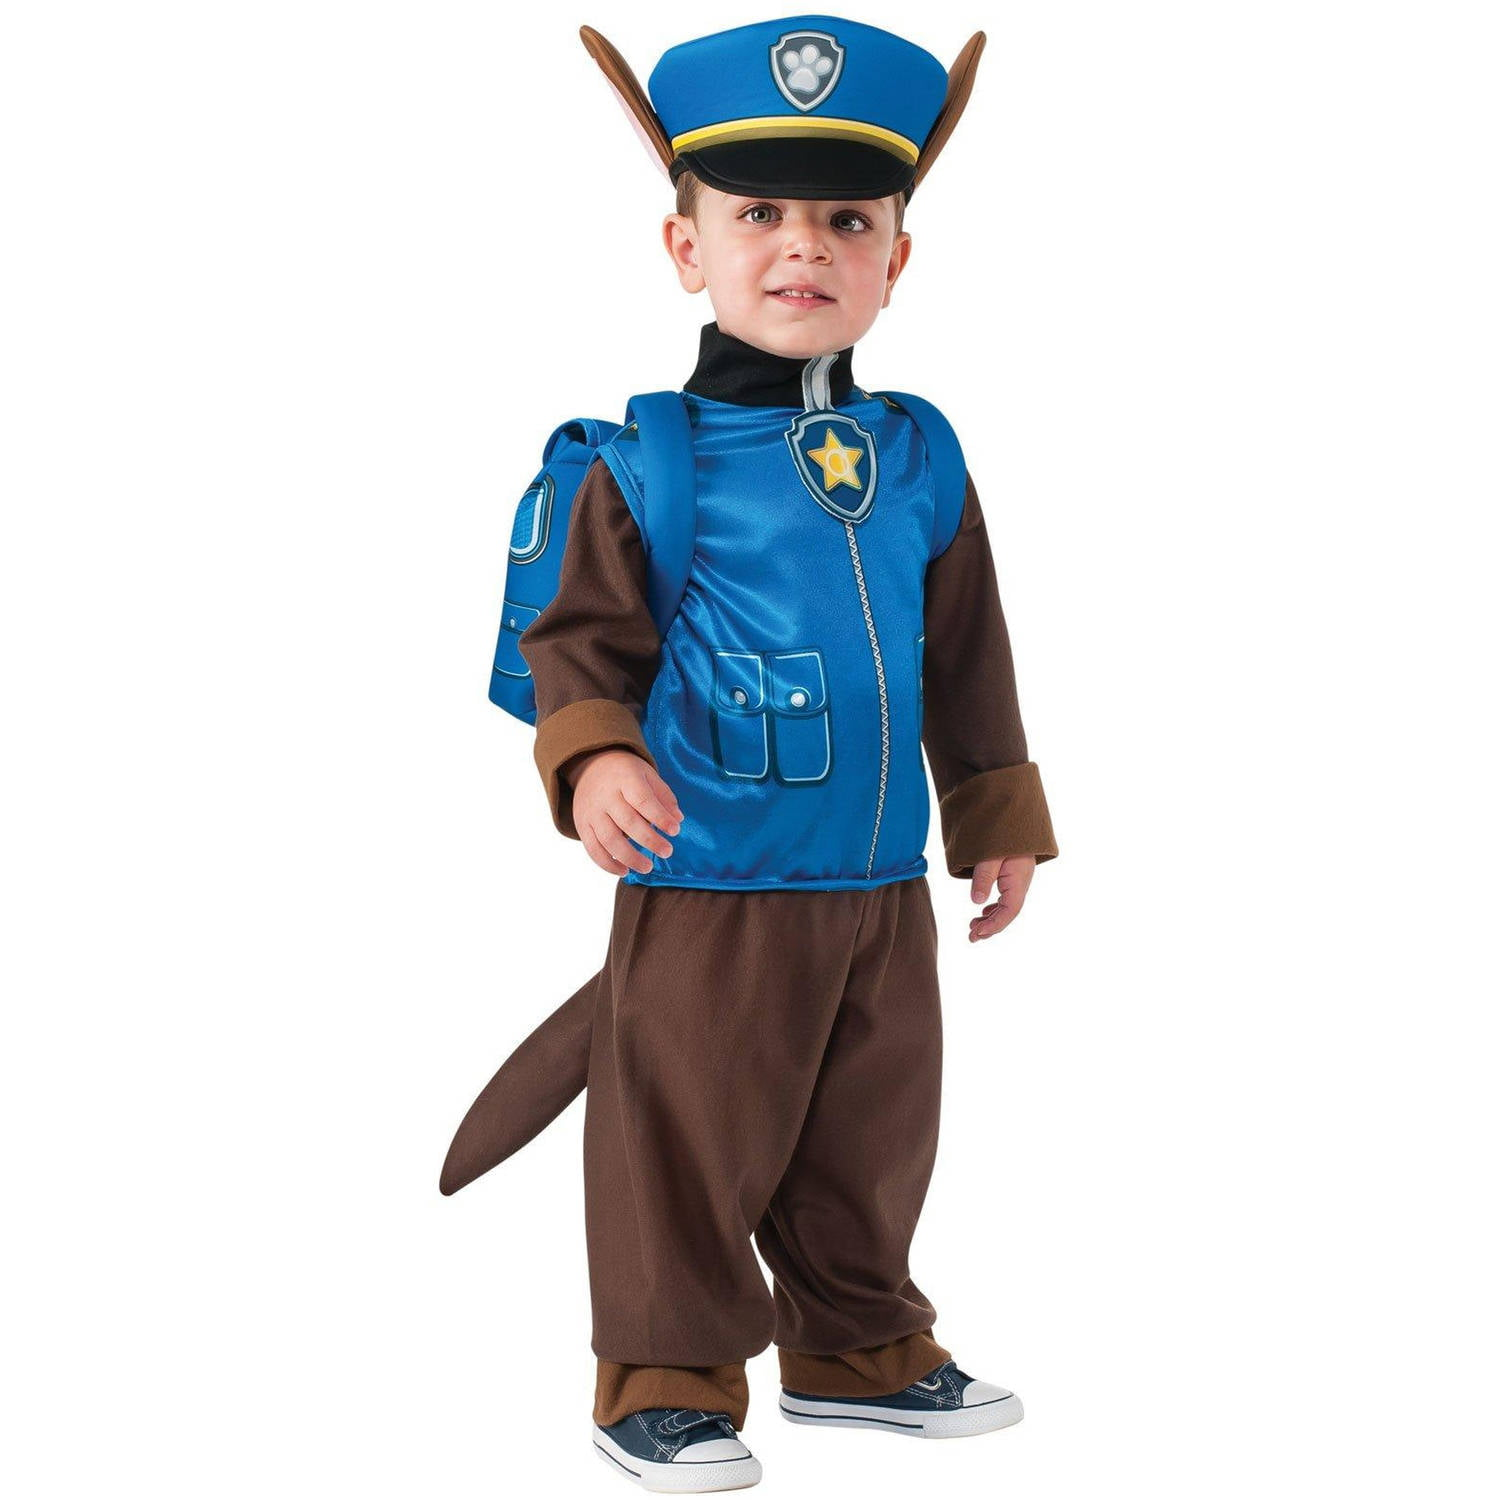 Halloween Costumes For Kidsboys.Paw Patrol Chase Boys Halloween Costume